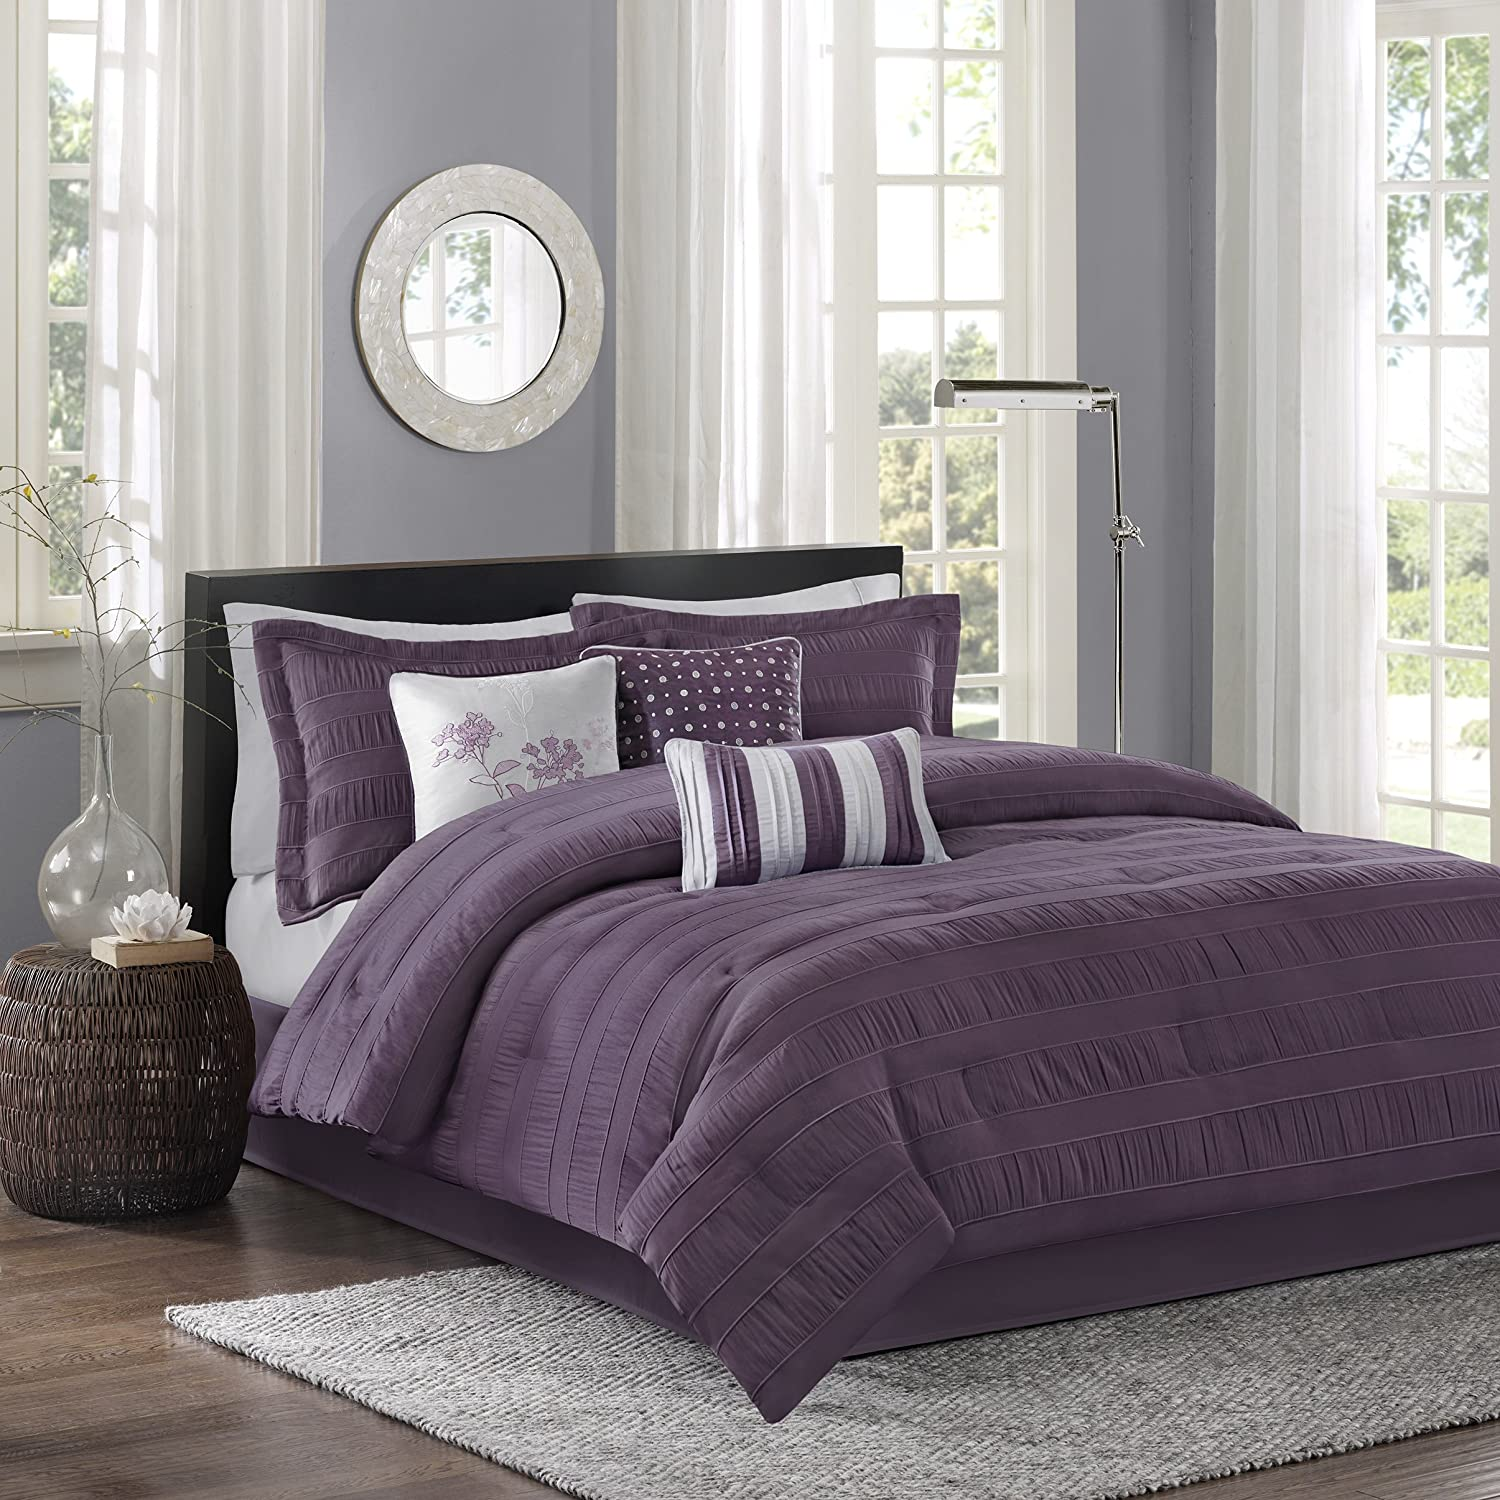 purple bedroom sets. Amazon com  Madison Park Hampton 7 Piece Comforter Set Queen Plum Home Kitchen